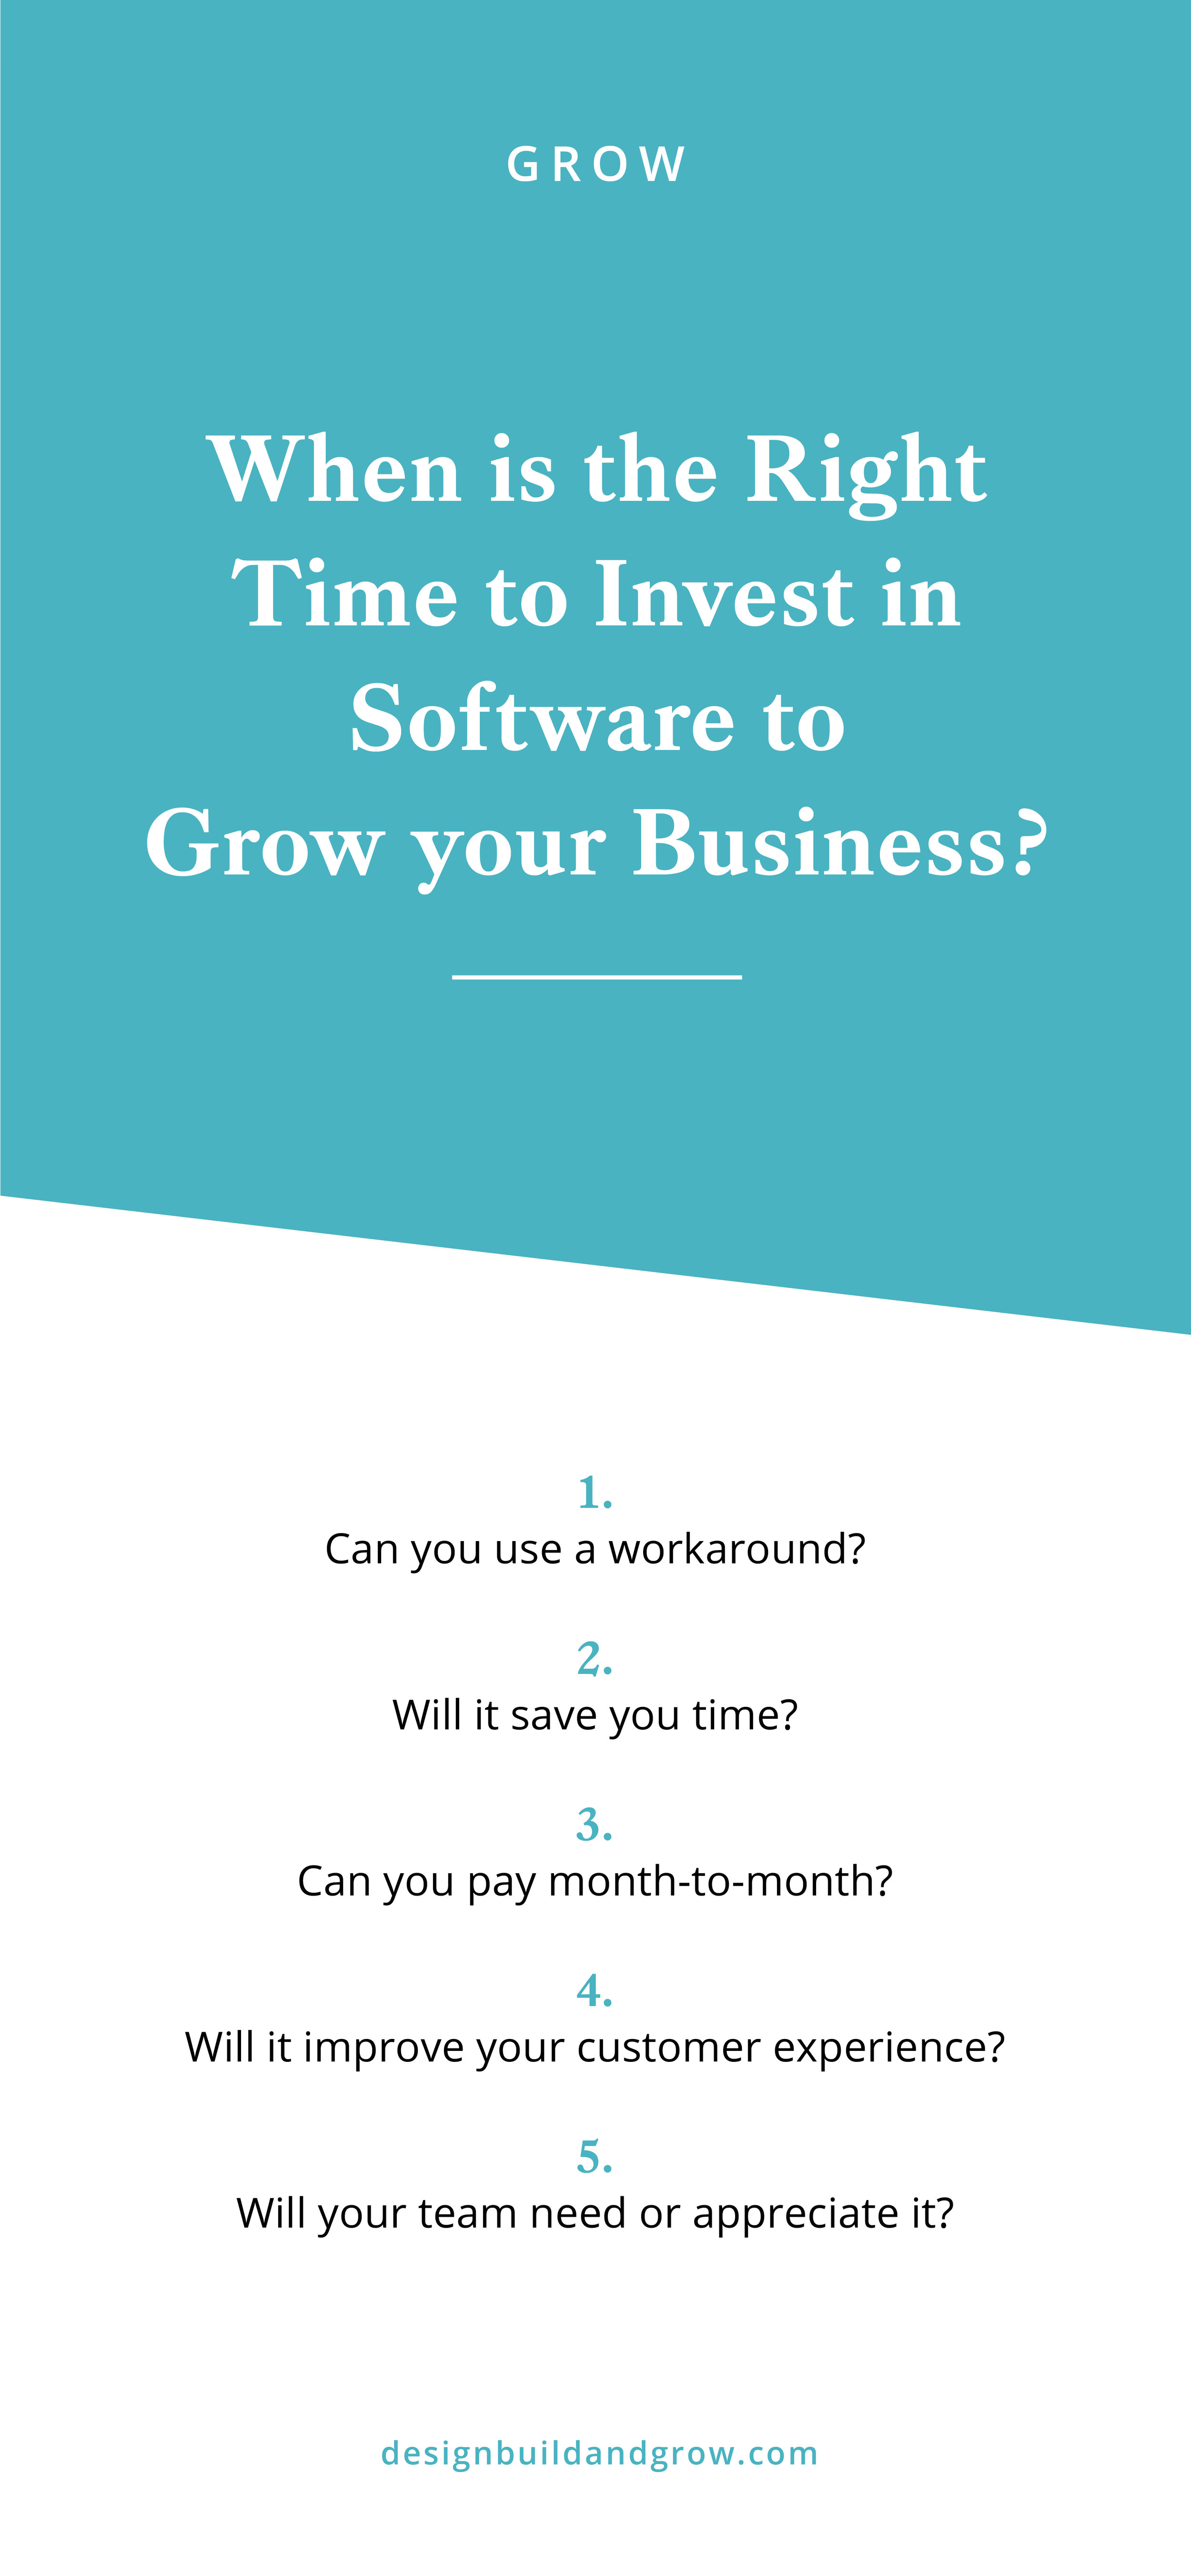 When is the best time to invest in software for your business?